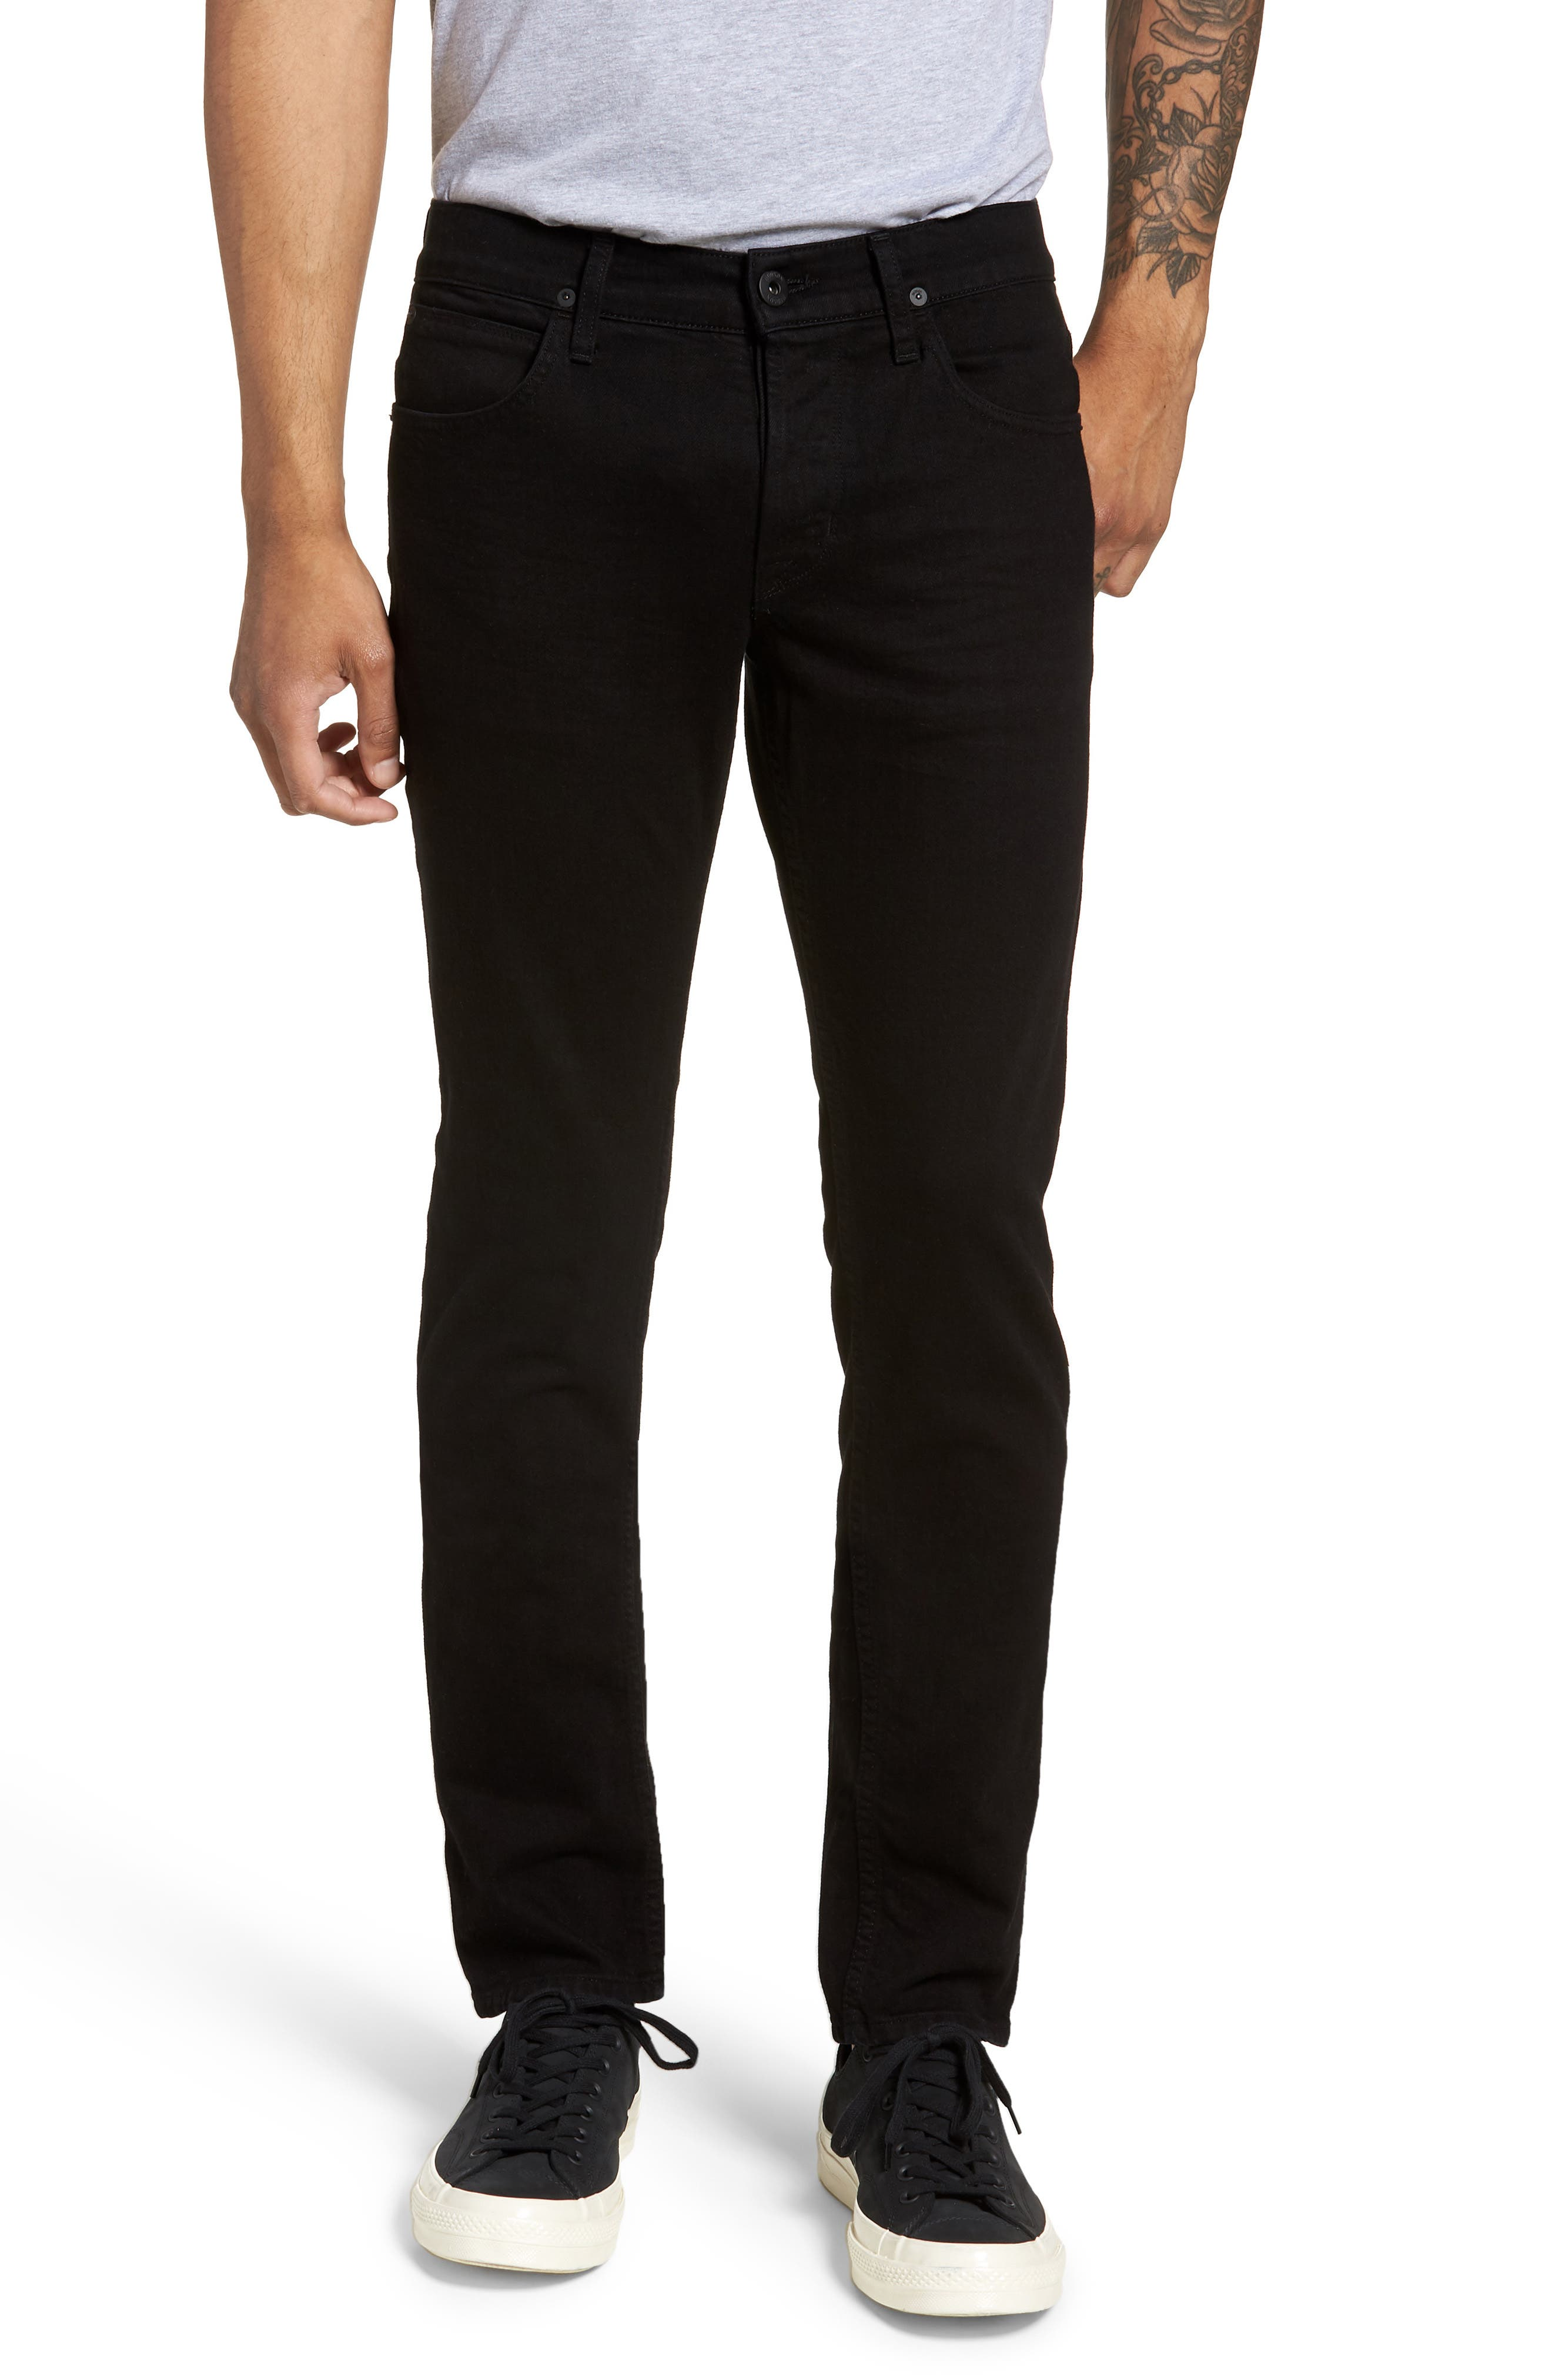 Axl Skinny Fit Jeans,                         Main,                         color, ABINGTON